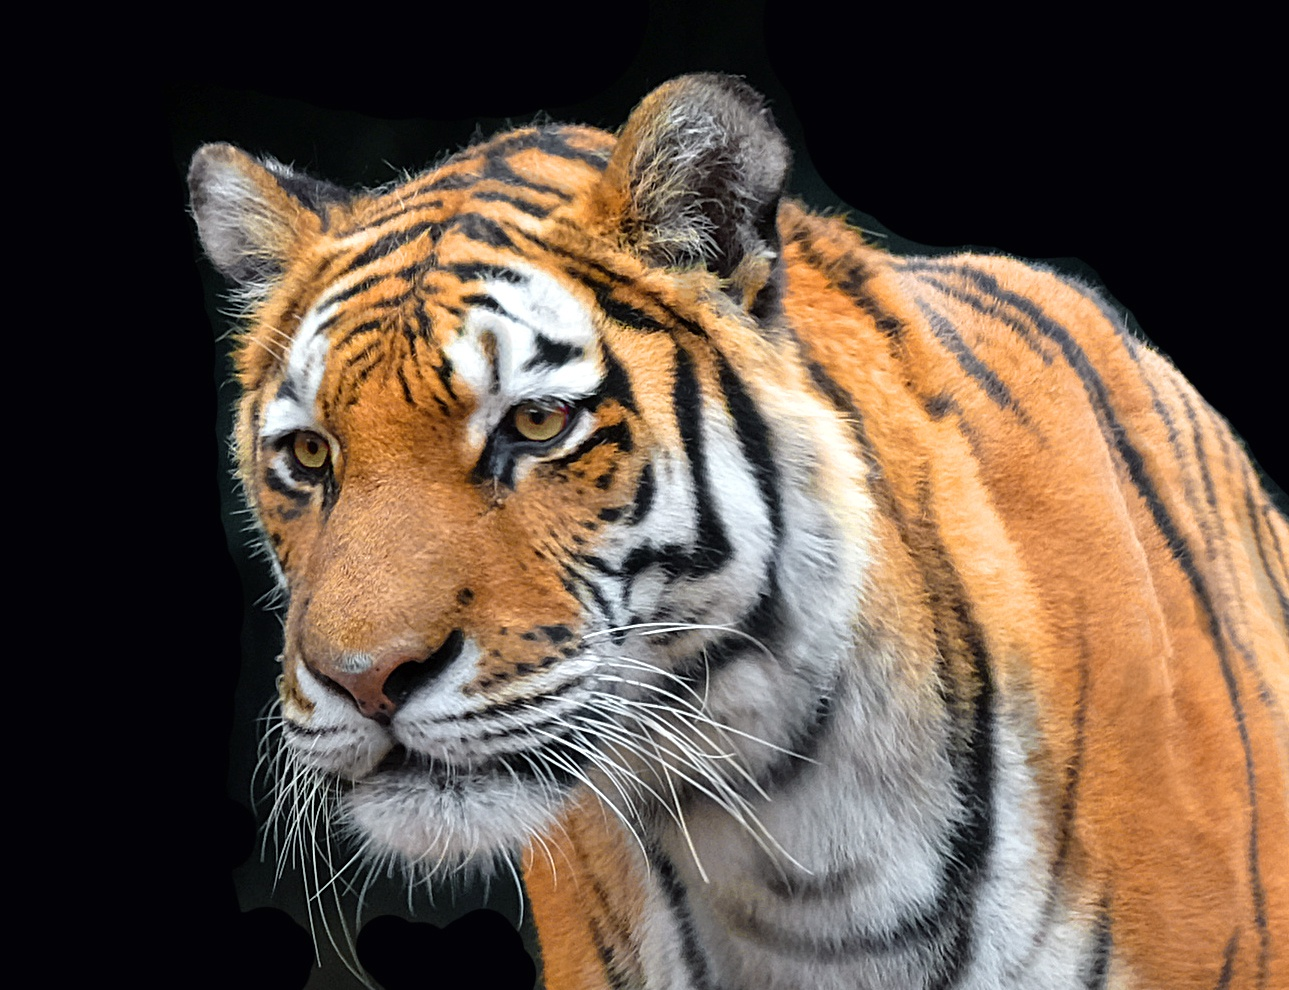 Milwaukee Tiger by butch.law